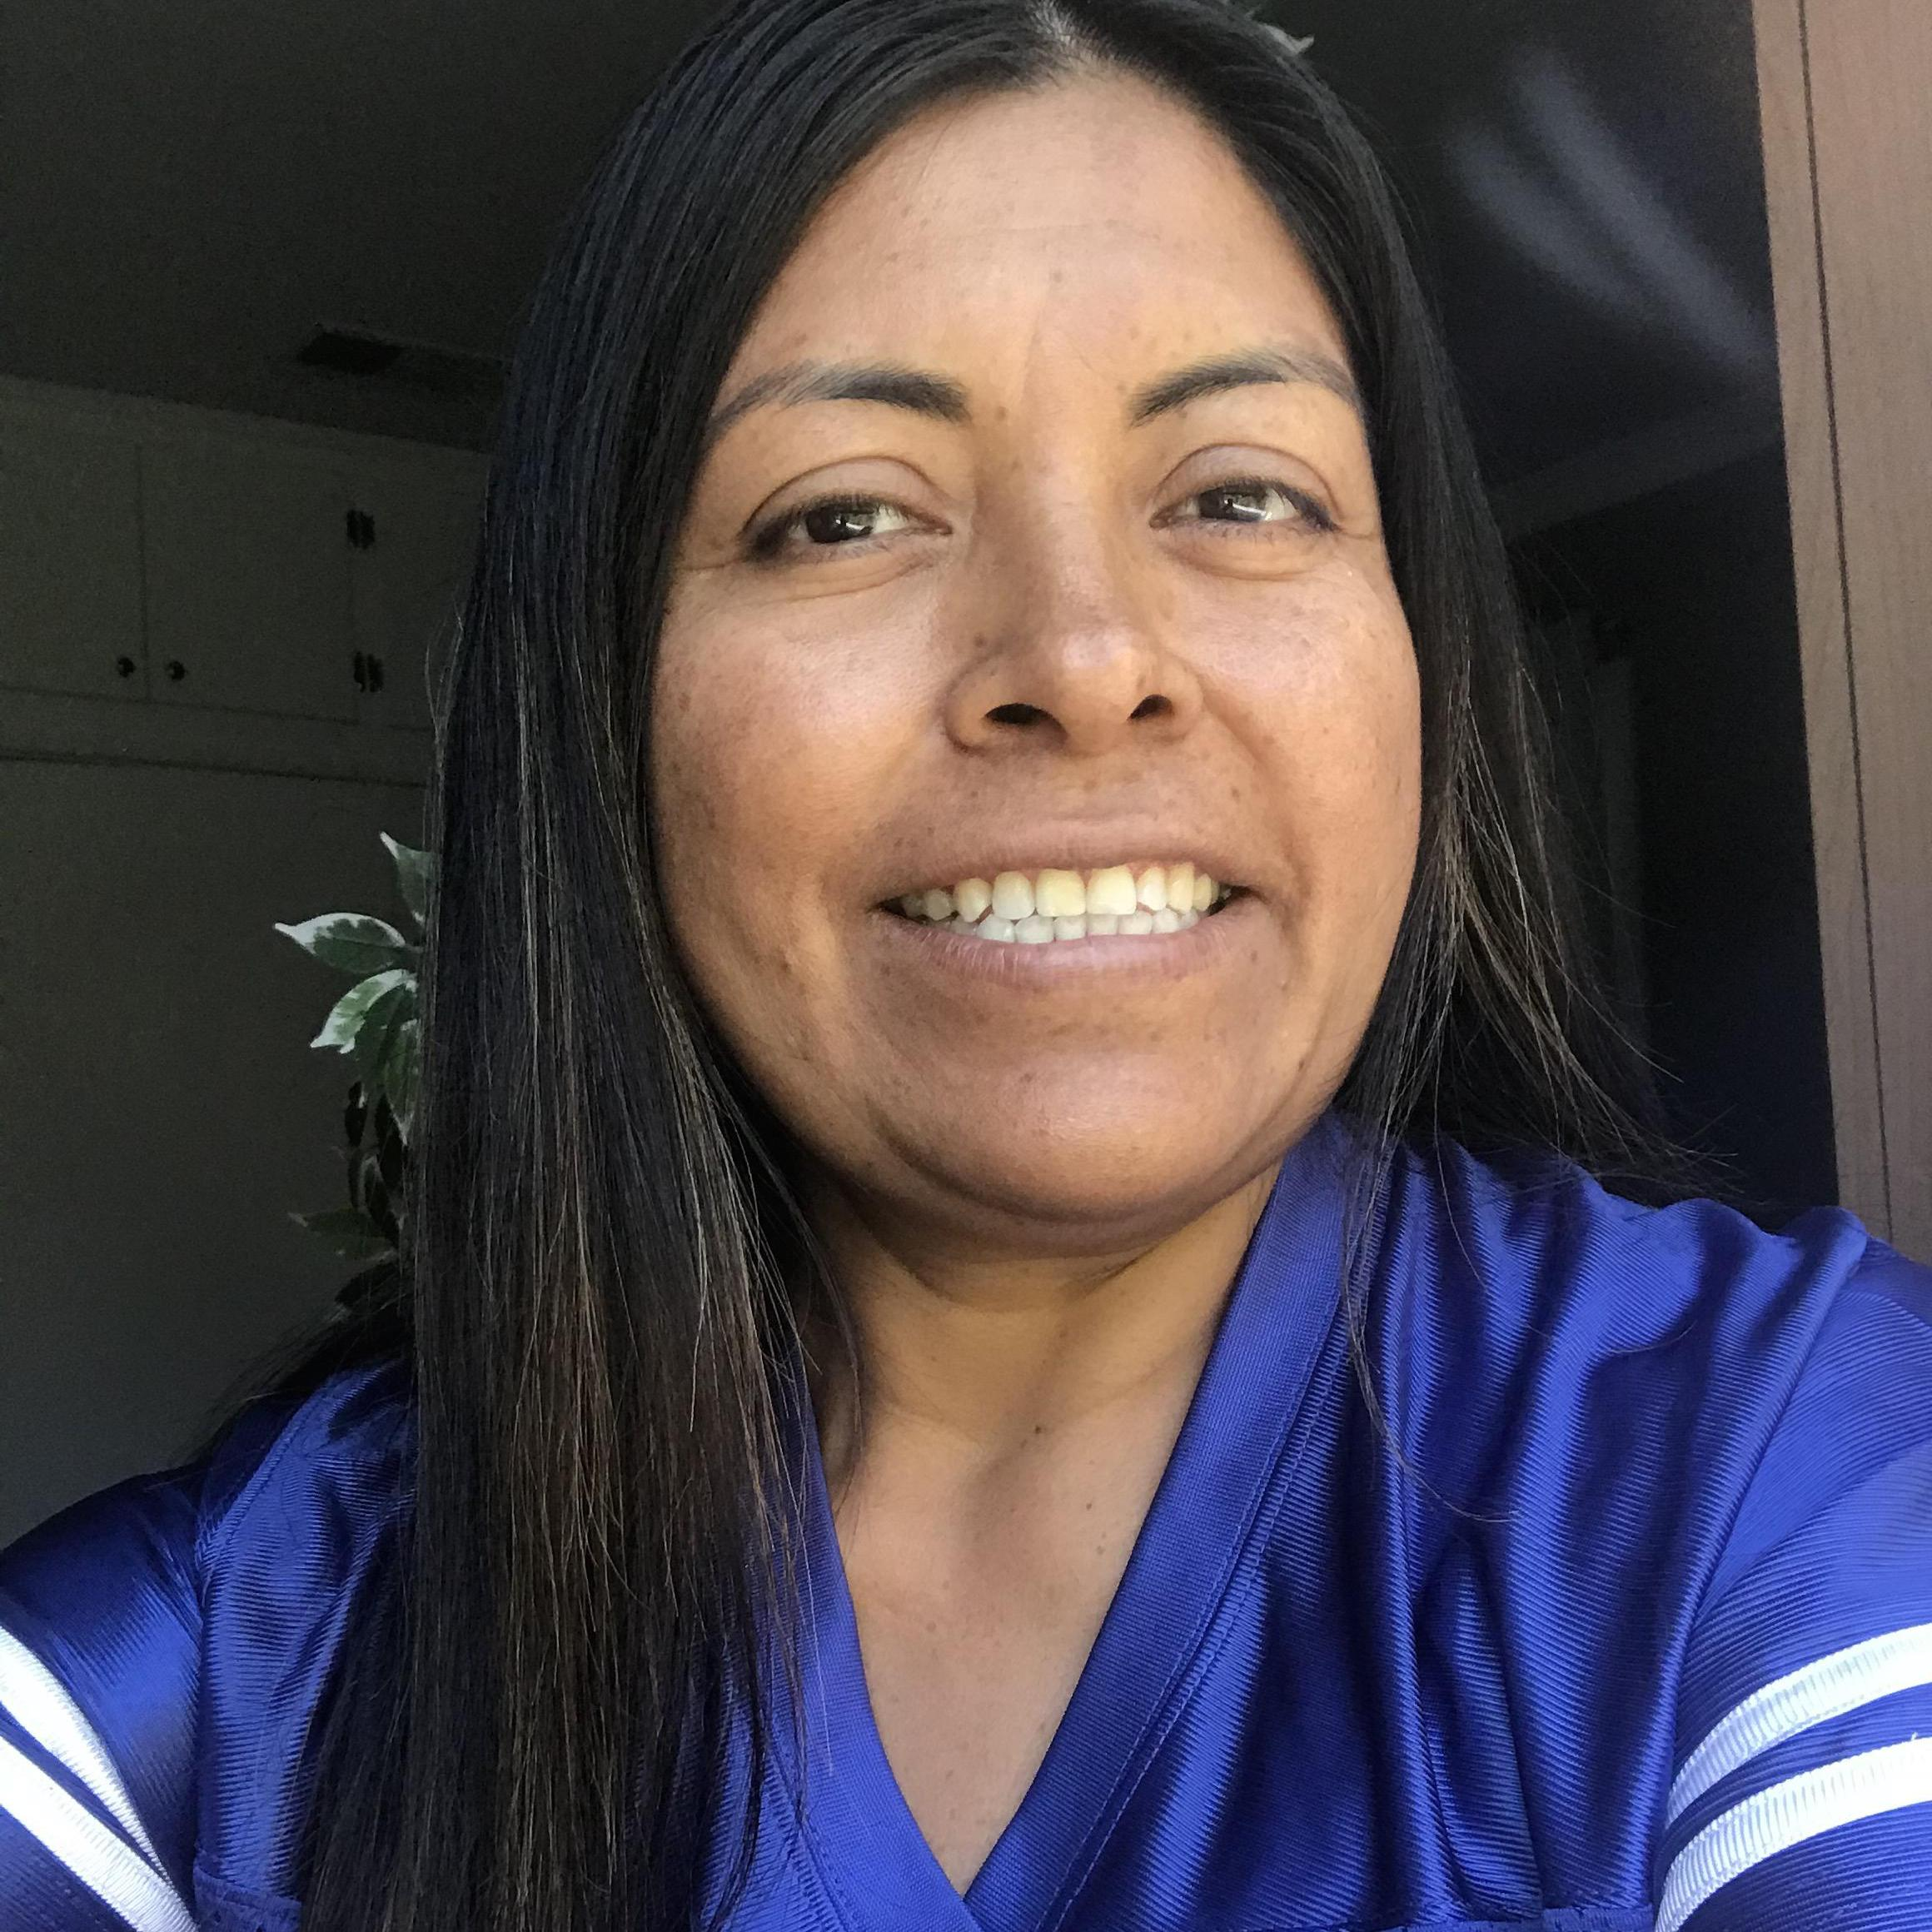 Araceli Vasquez De Carrillo's Profile Photo